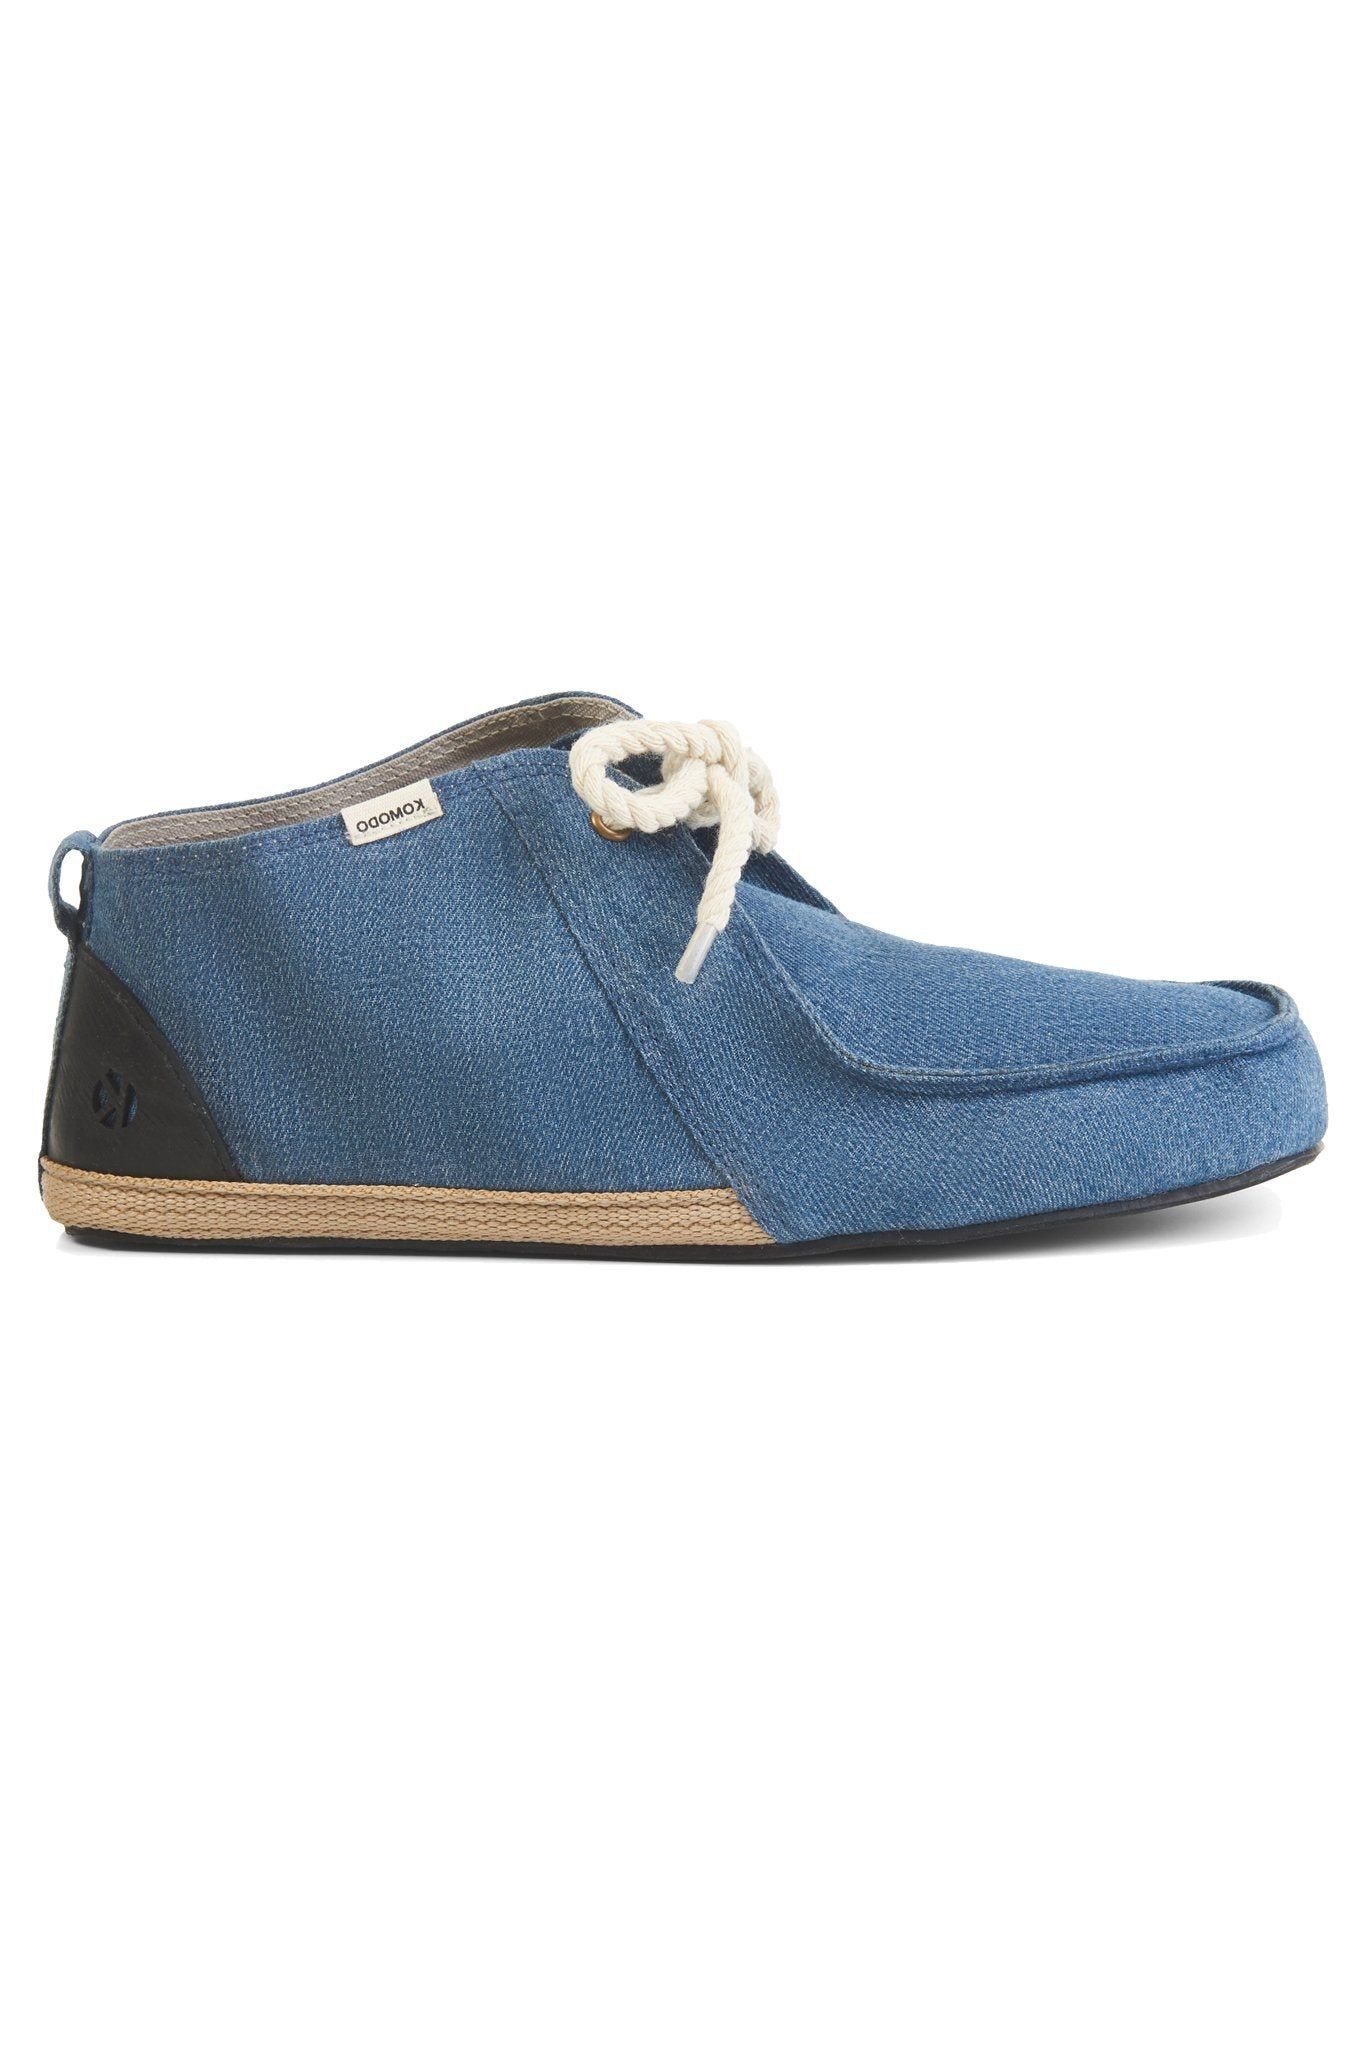 Shoes - JOLLYABY Mens Navy